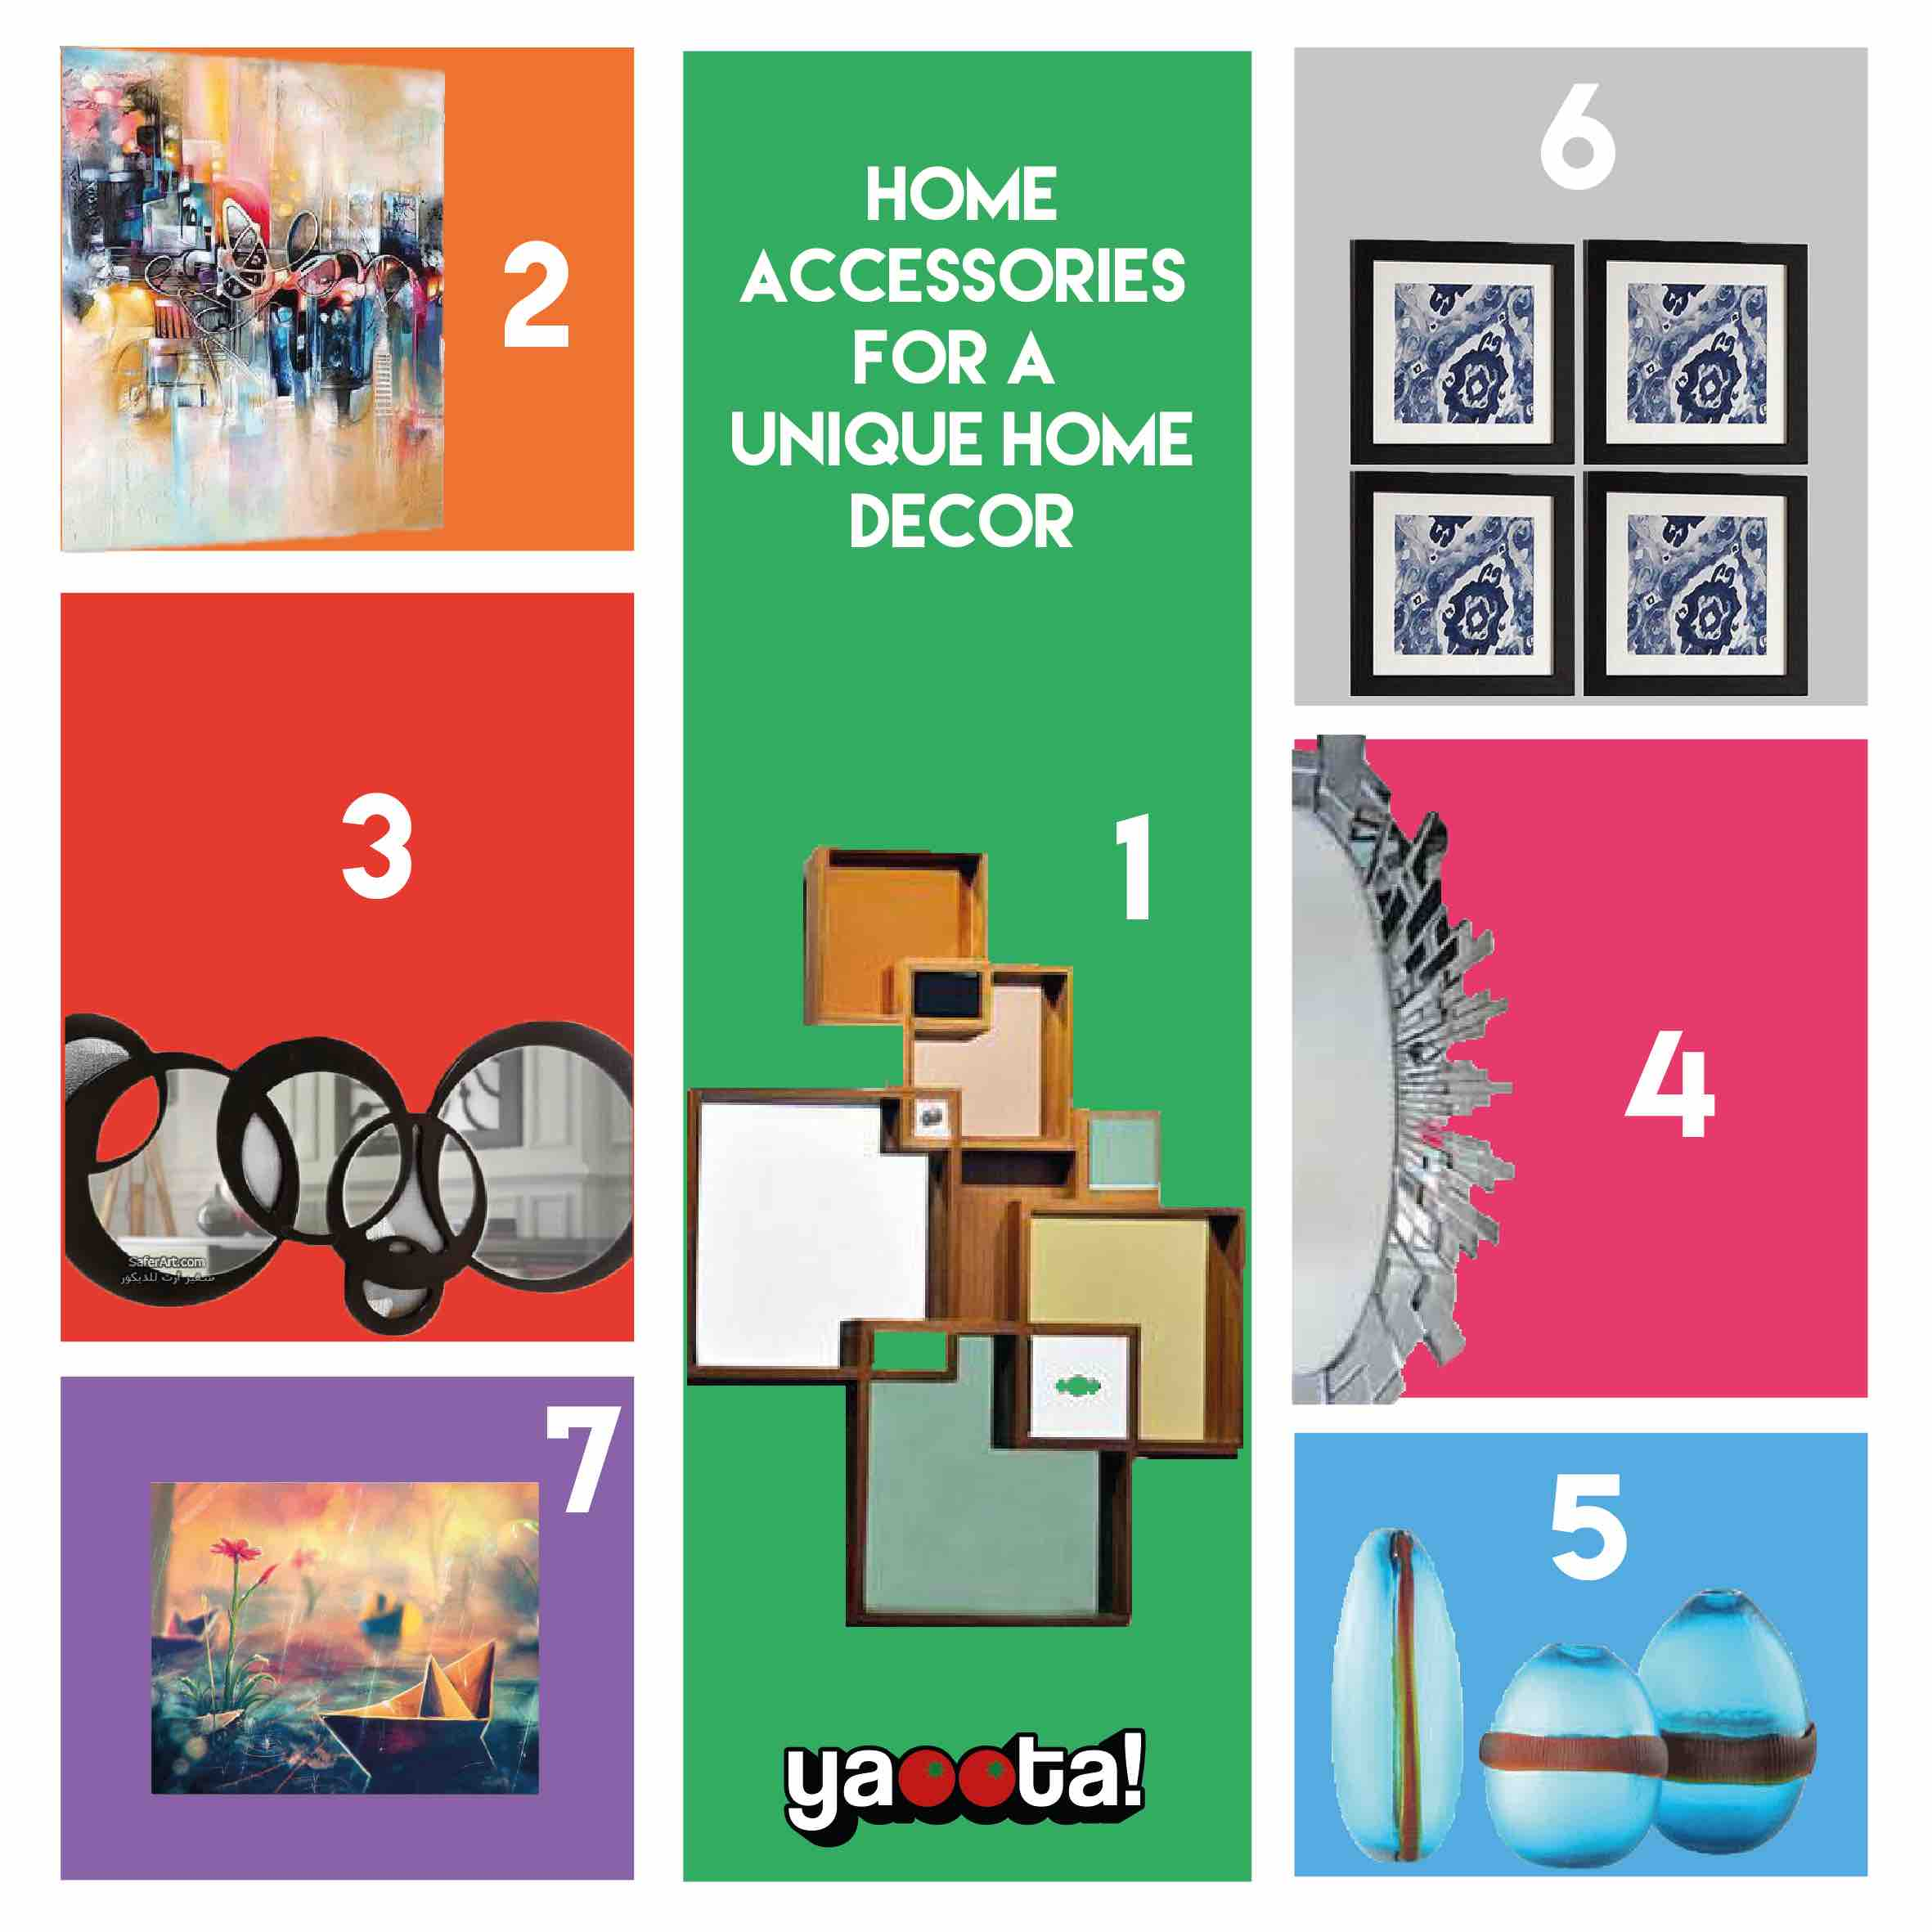 Home Accessories For A Unique Home Décor And Their